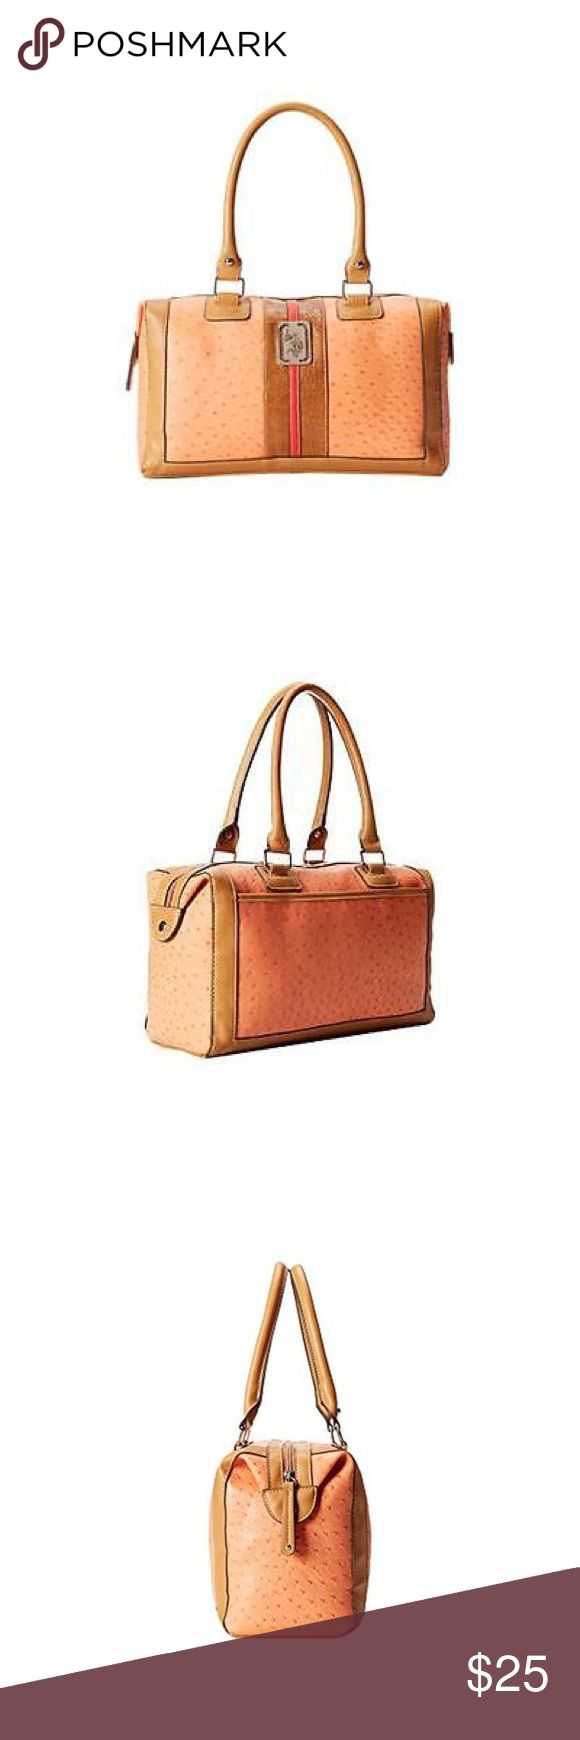 S. Polo Assn. Monty Orange Lined Purse Satchel S. Polo Assn. Monty Orange Lined Purse Satchel Handbag Medium.Manufacturer: U.S. Polo Assn. Size: Medium Manufacturer Color: Orange Combo Condition: New with tags Style Type: Satchel Collection: U.S. Polo Assn. Handle Type: Double Compartment: Open Slip Closure: Zipper Bag Height (Inches): 7 1/2 Inches Bag Width (Inches): 13 Inches Bag Depth (Inches): 5 1/2 Inches Strap Drop (Inches): 9 Inches Material: Vinyl/Polyester/Polyurethane Foam Fabric…